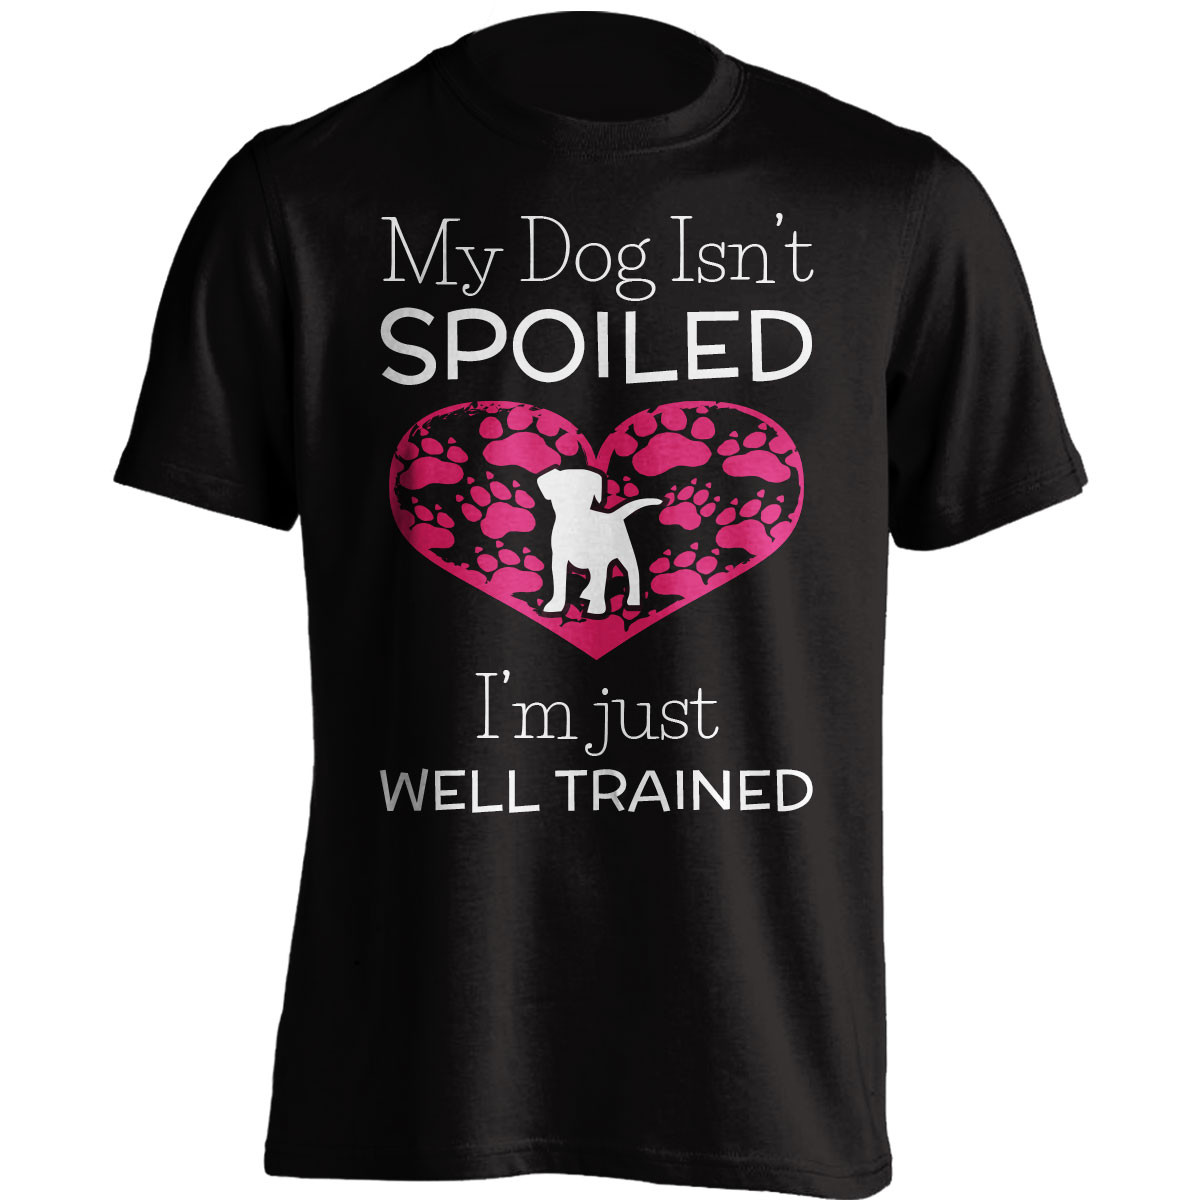 My Dog Isn't Spoiled I'm Just Well Trained T-Shirt